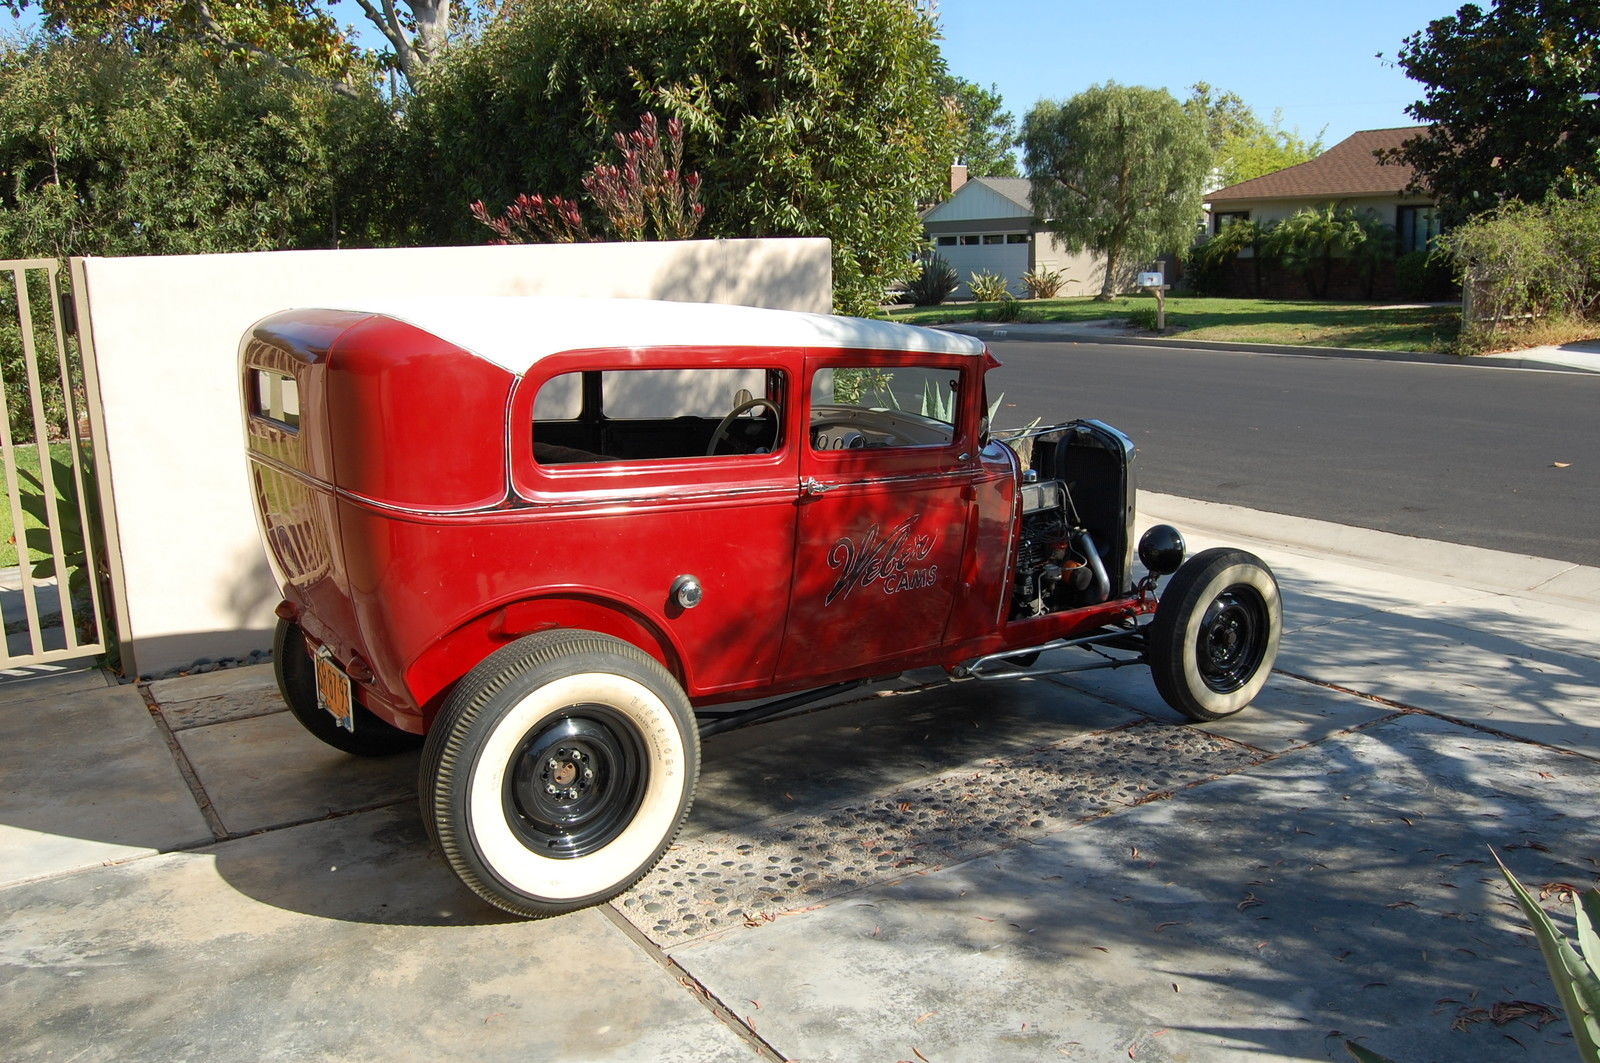 Restored Vintage 1930 Ford Model A Sedan Hot Rod 30 W 32